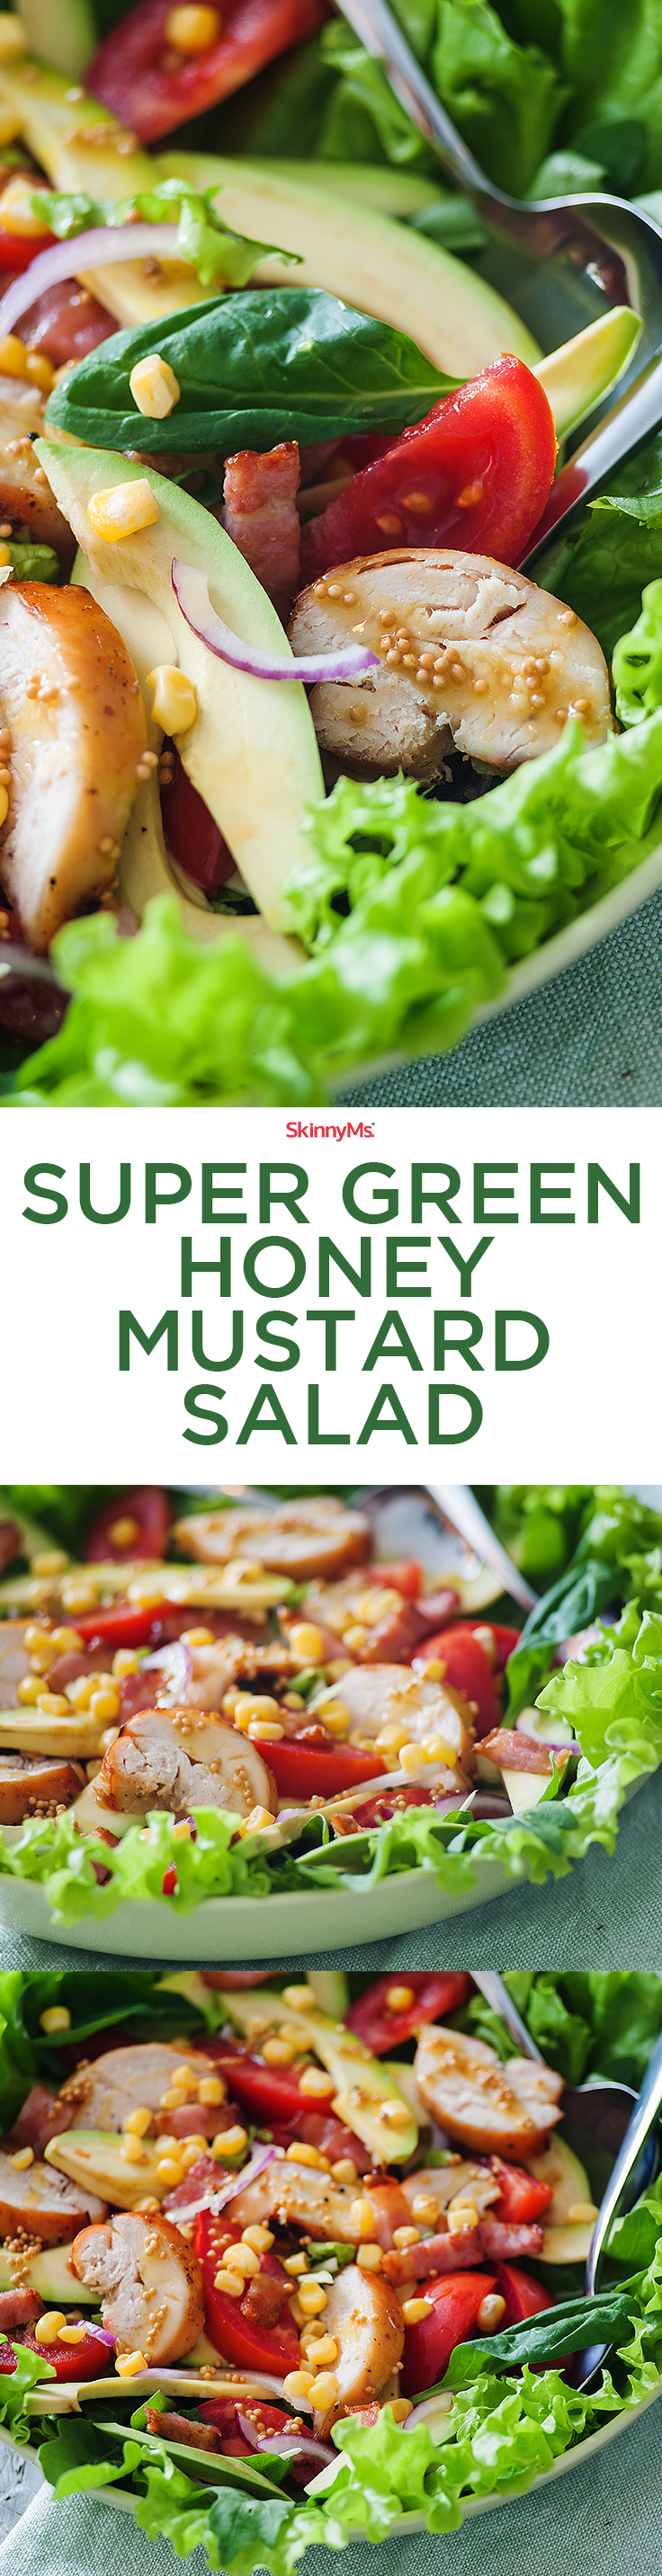 Super Green Honey Mustard Salad